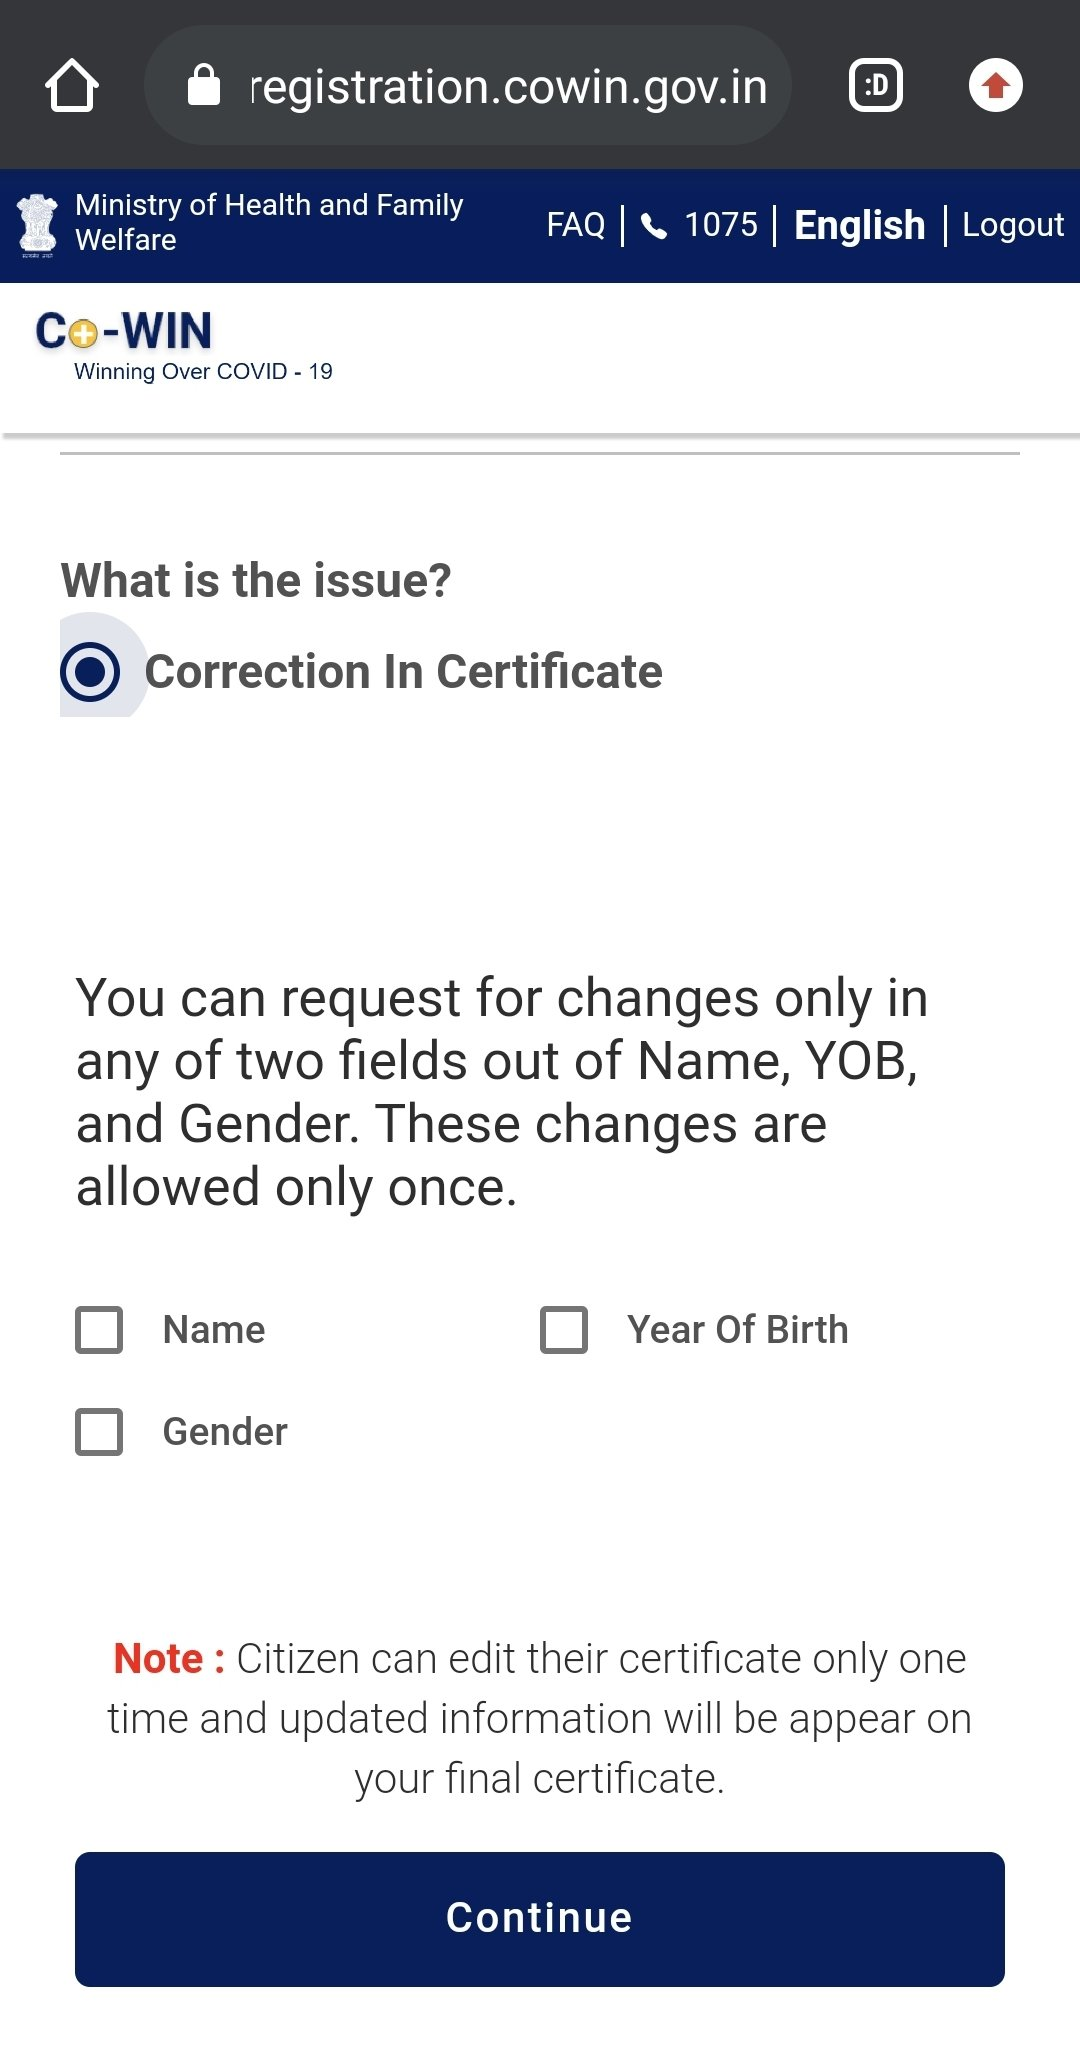 The option for correction is for only one time.